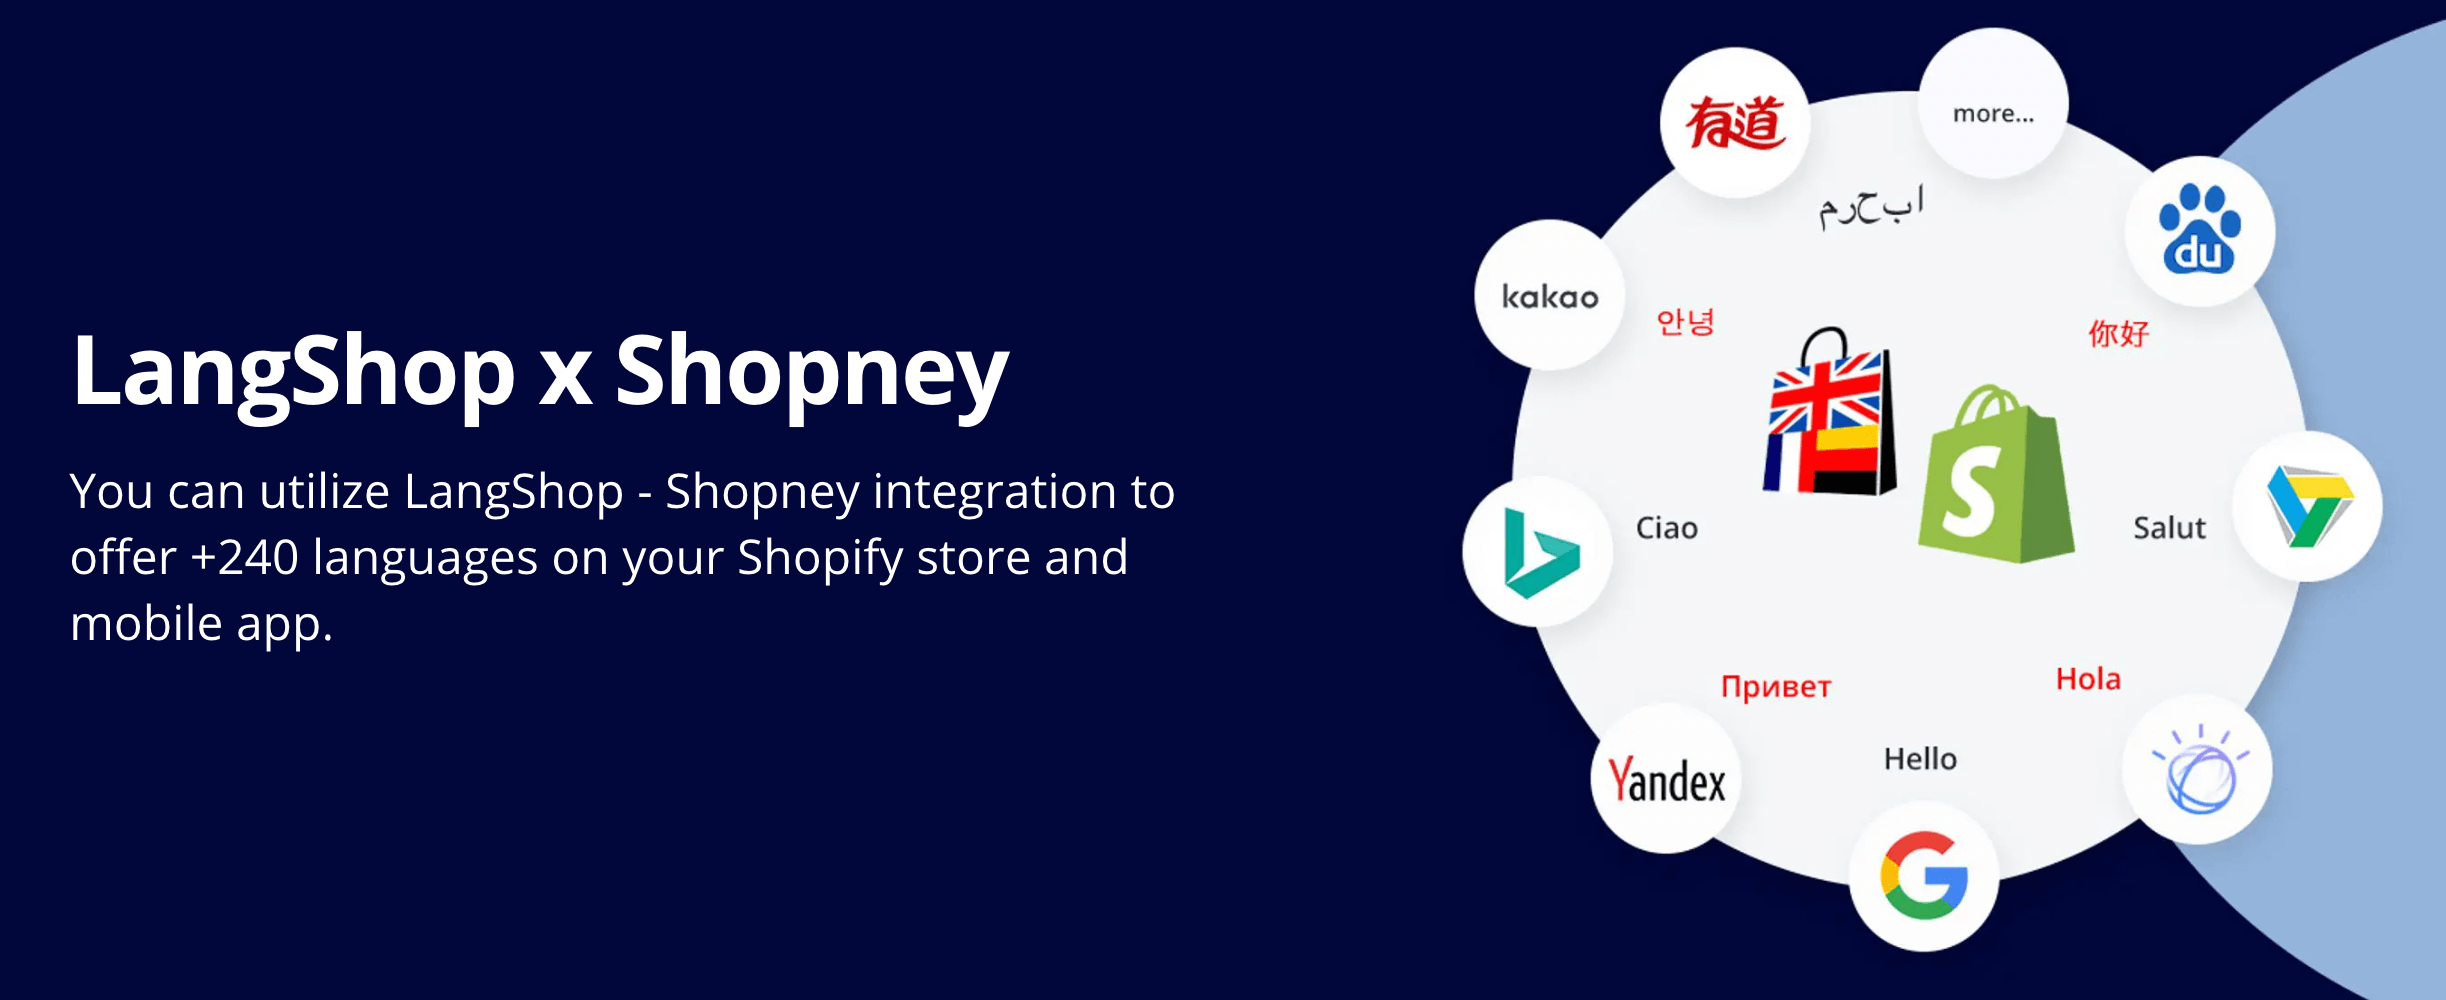 LangShop integrated with Shopney mobile app